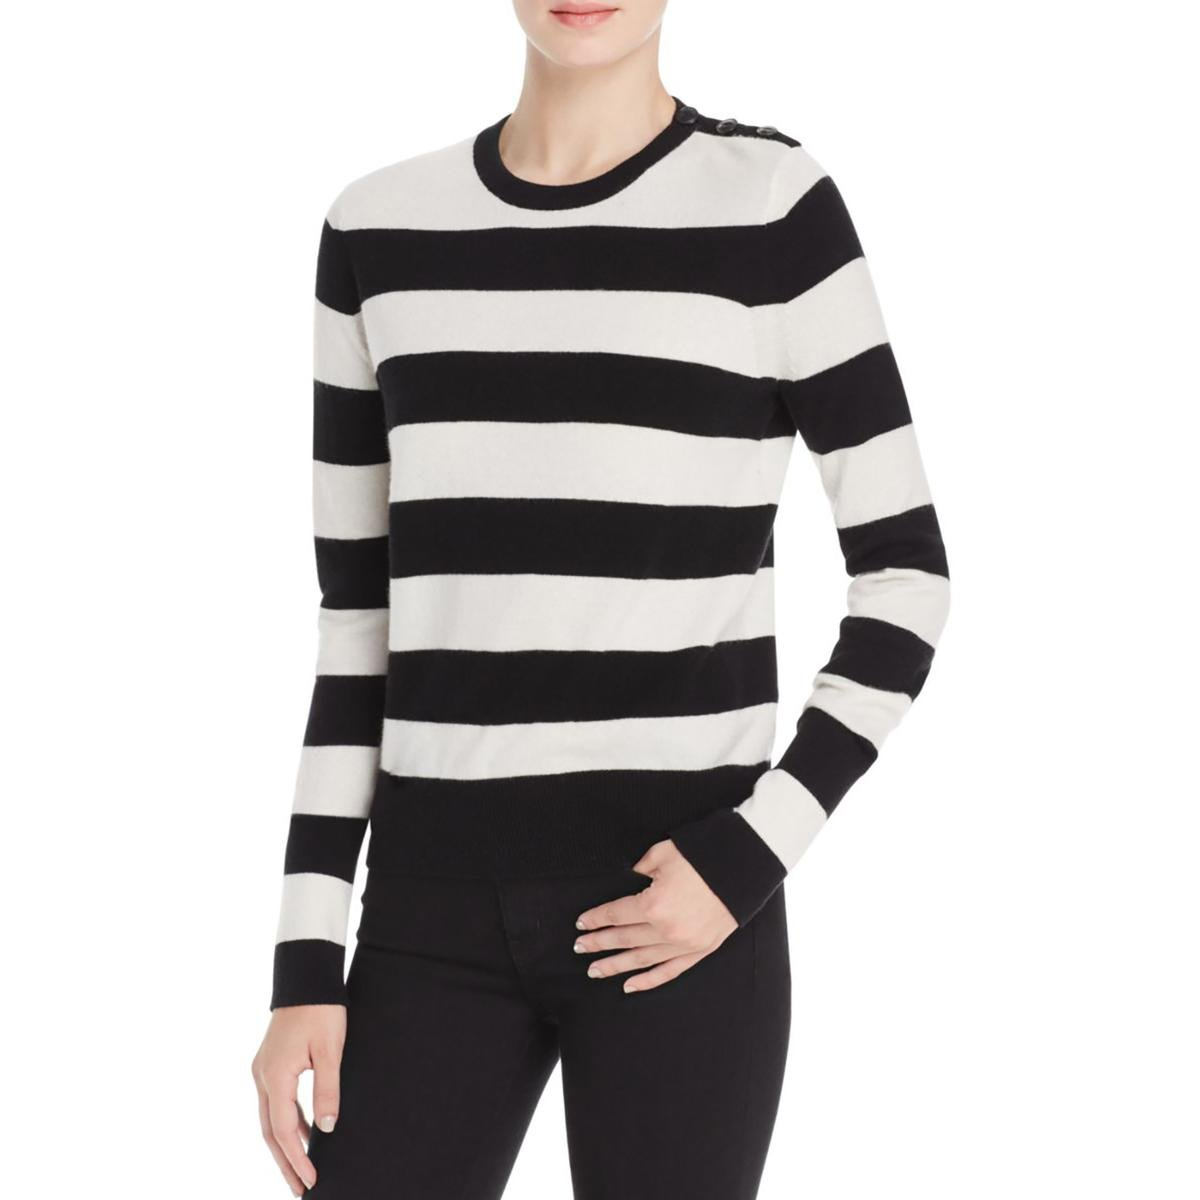 Rag & Bone Womens Careen Striped Ribbed Trim Pullover Top Black-Ivory XS